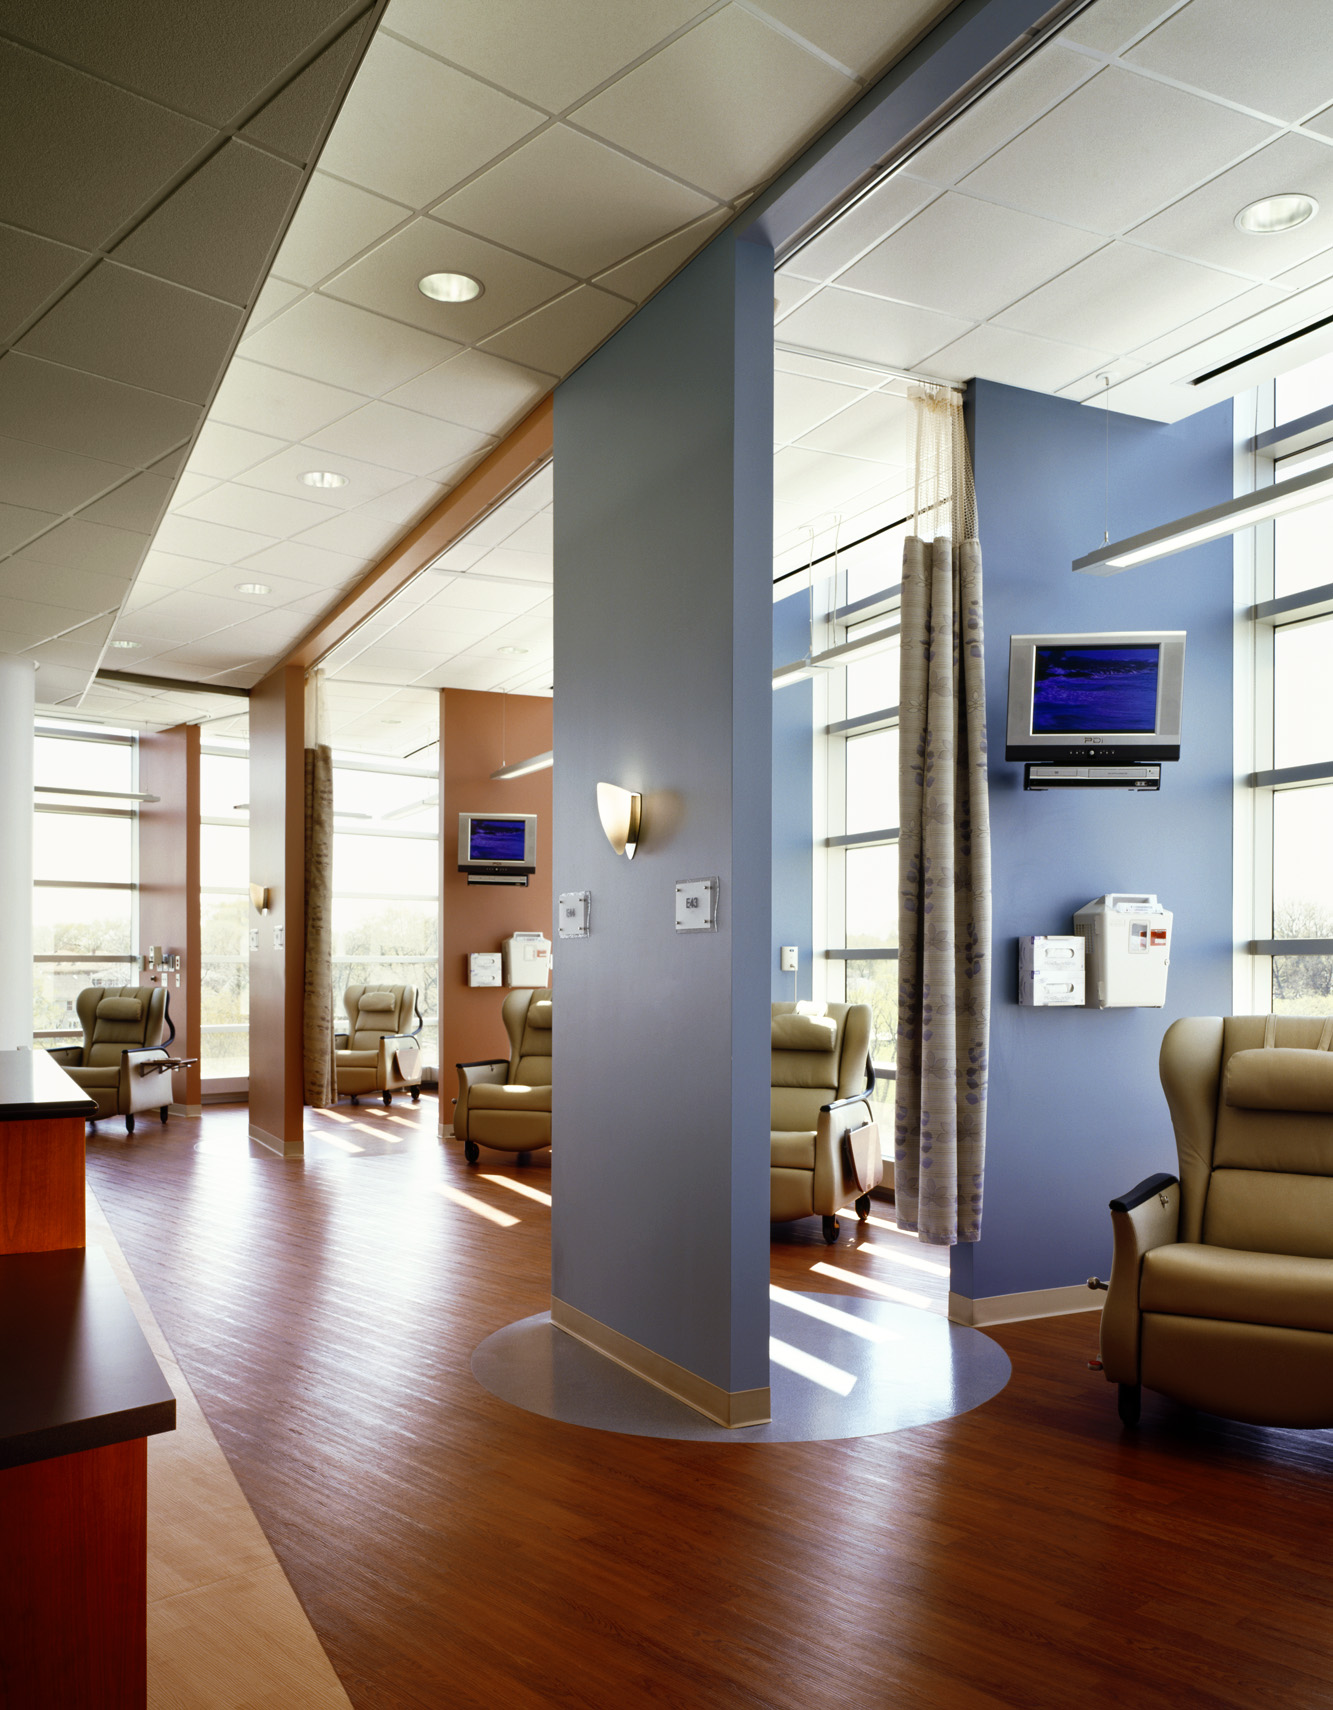 Ref. 508- Infusion Centers Save Millions and Offer Comfortable Care